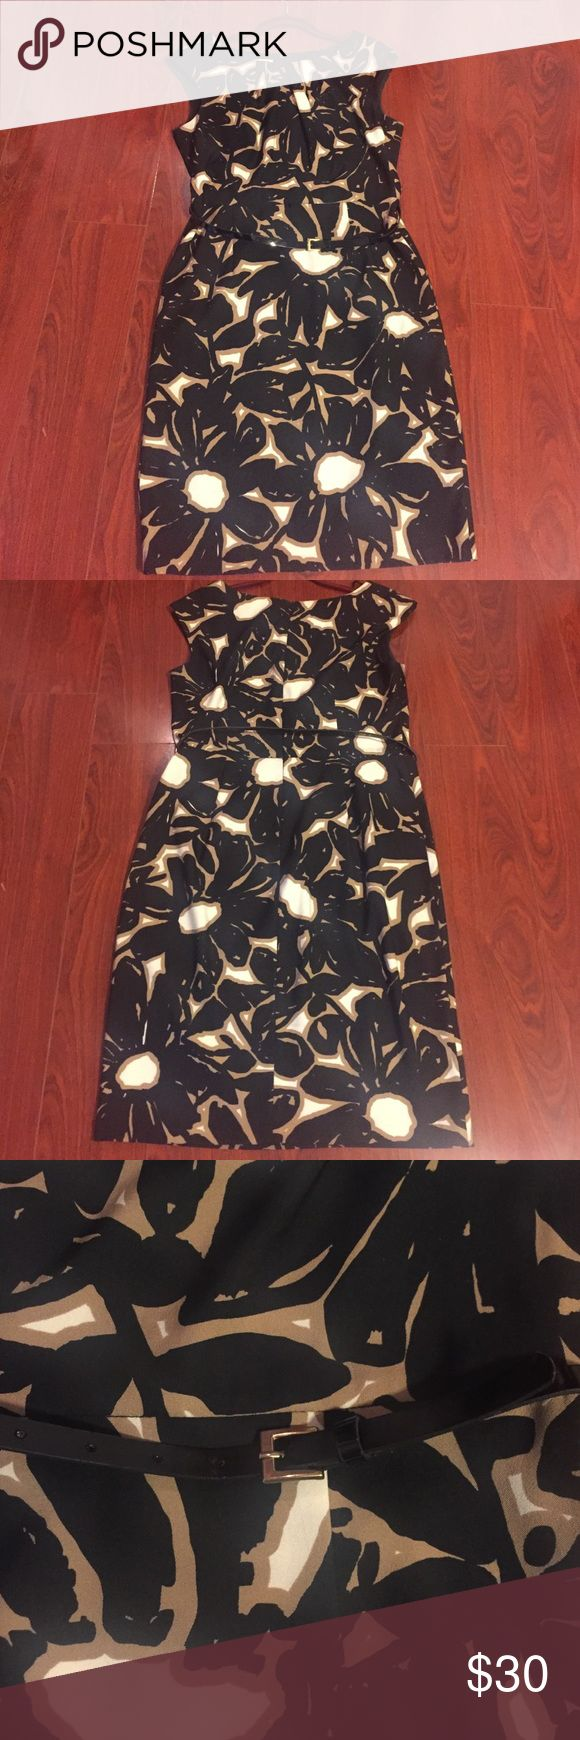 London Times Midi dress London Times Midi dress black beige and coffee color. Size 12 with belt. London Times Dresses Midi